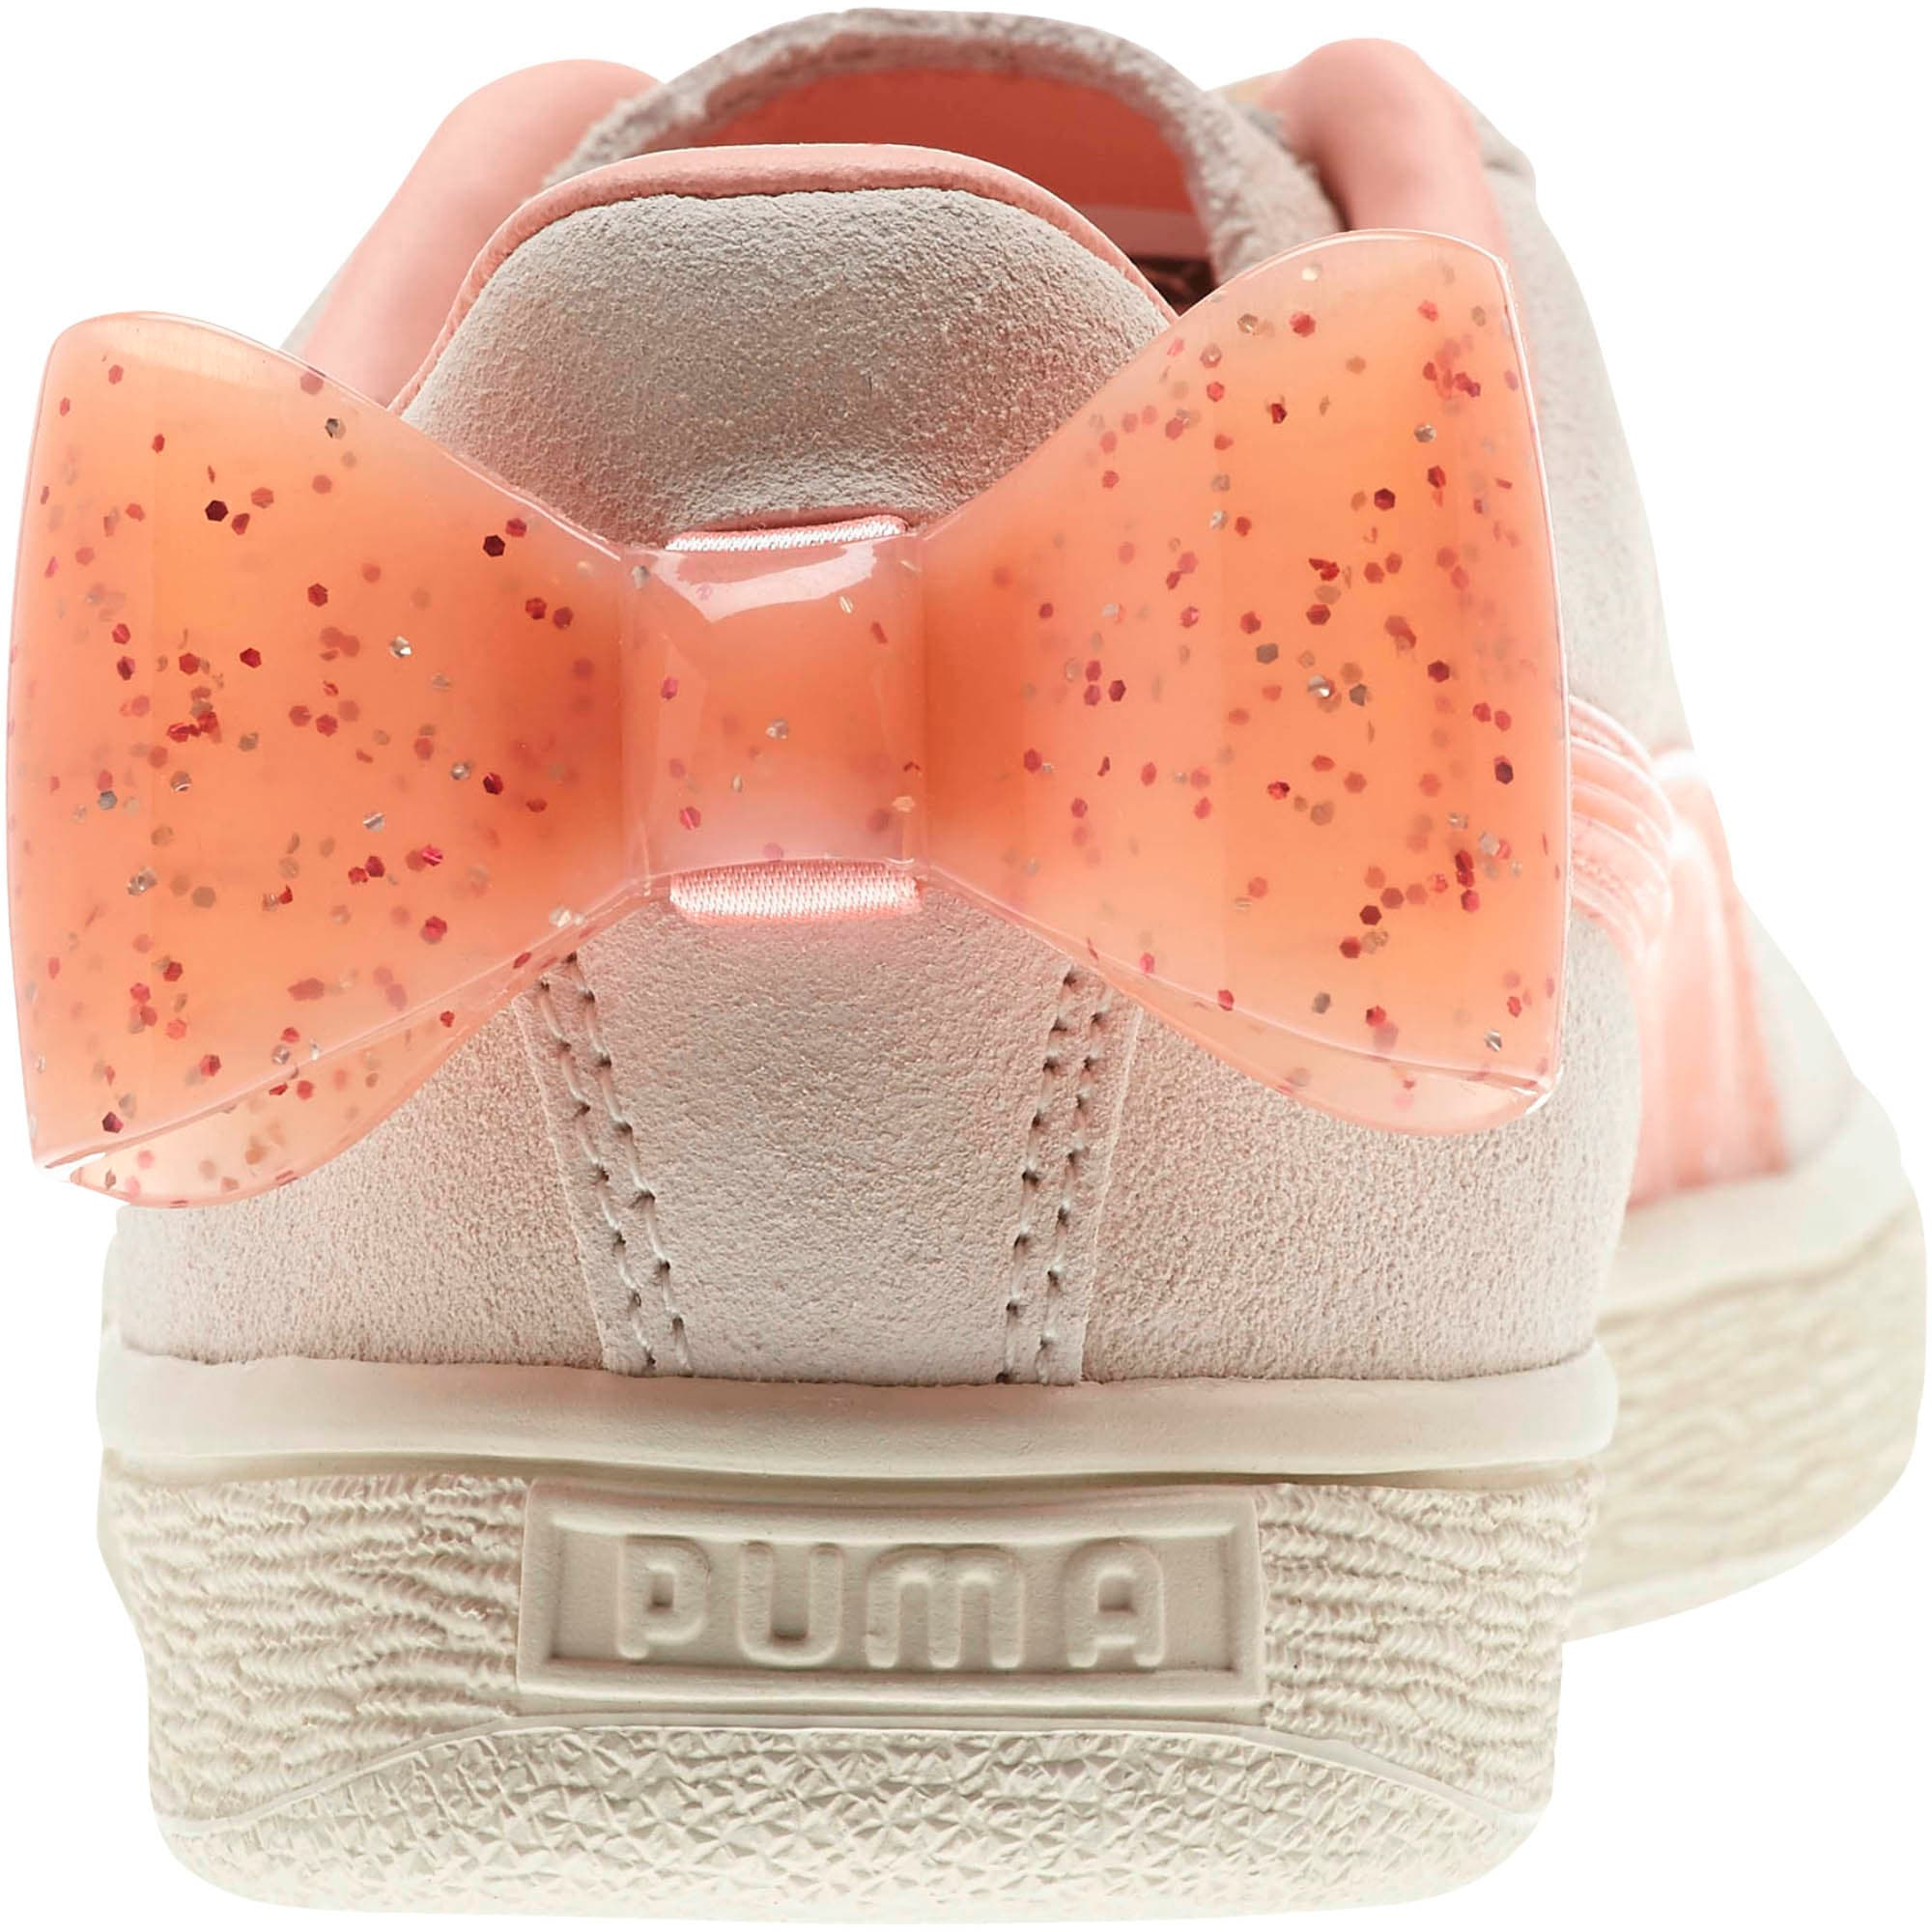 Miniatura 3 de Zapatos deportivos Suede Jelly Bow JR, Whis White-Peach Bud-Silver, mediano